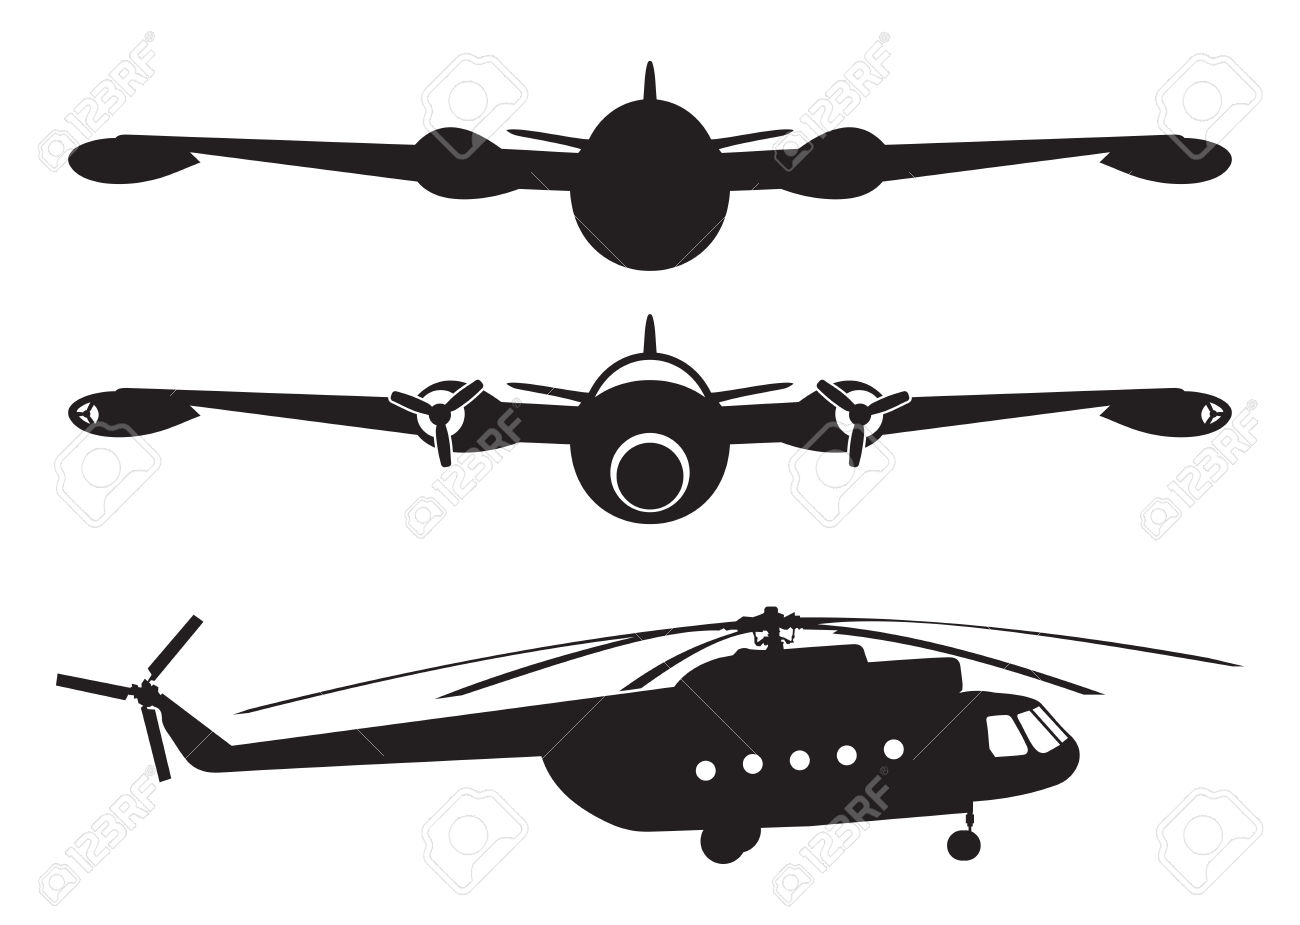 rotor plane clipart